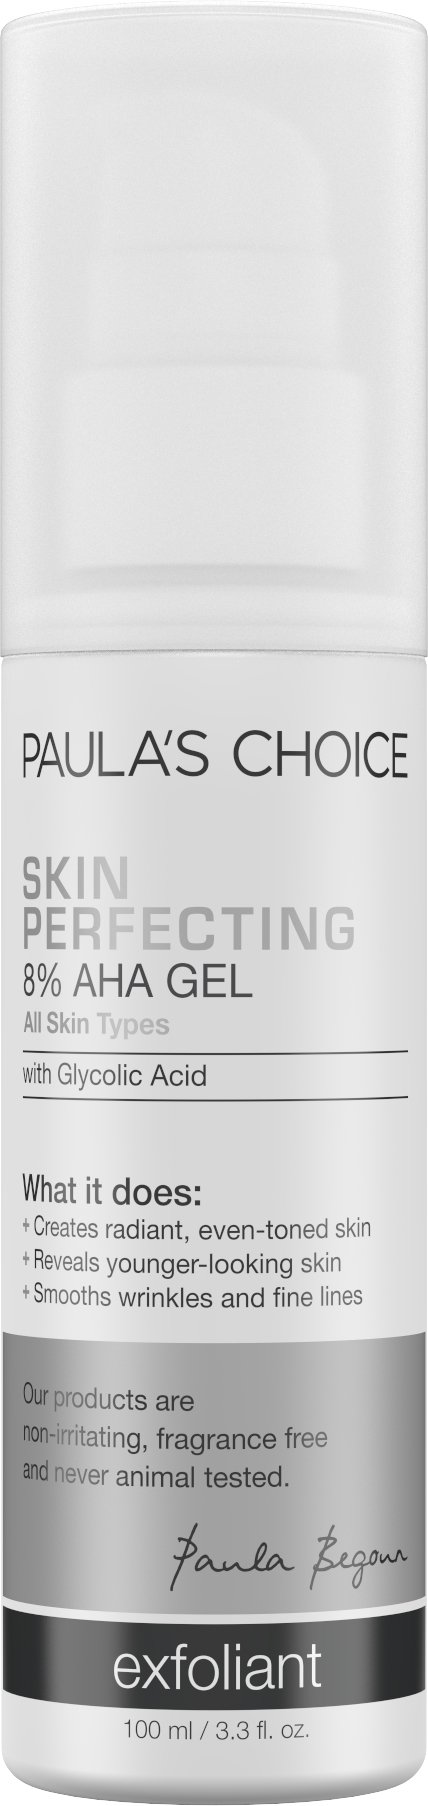 Paula's Choice-SKIN PERFECTING 8% AHA Gel Exfoliant with Glycolic Acid Chamomile & Green Tea-Facial Exfoliant for Normal to Dry Skin Fine Lines-1-3.3 oz Pump